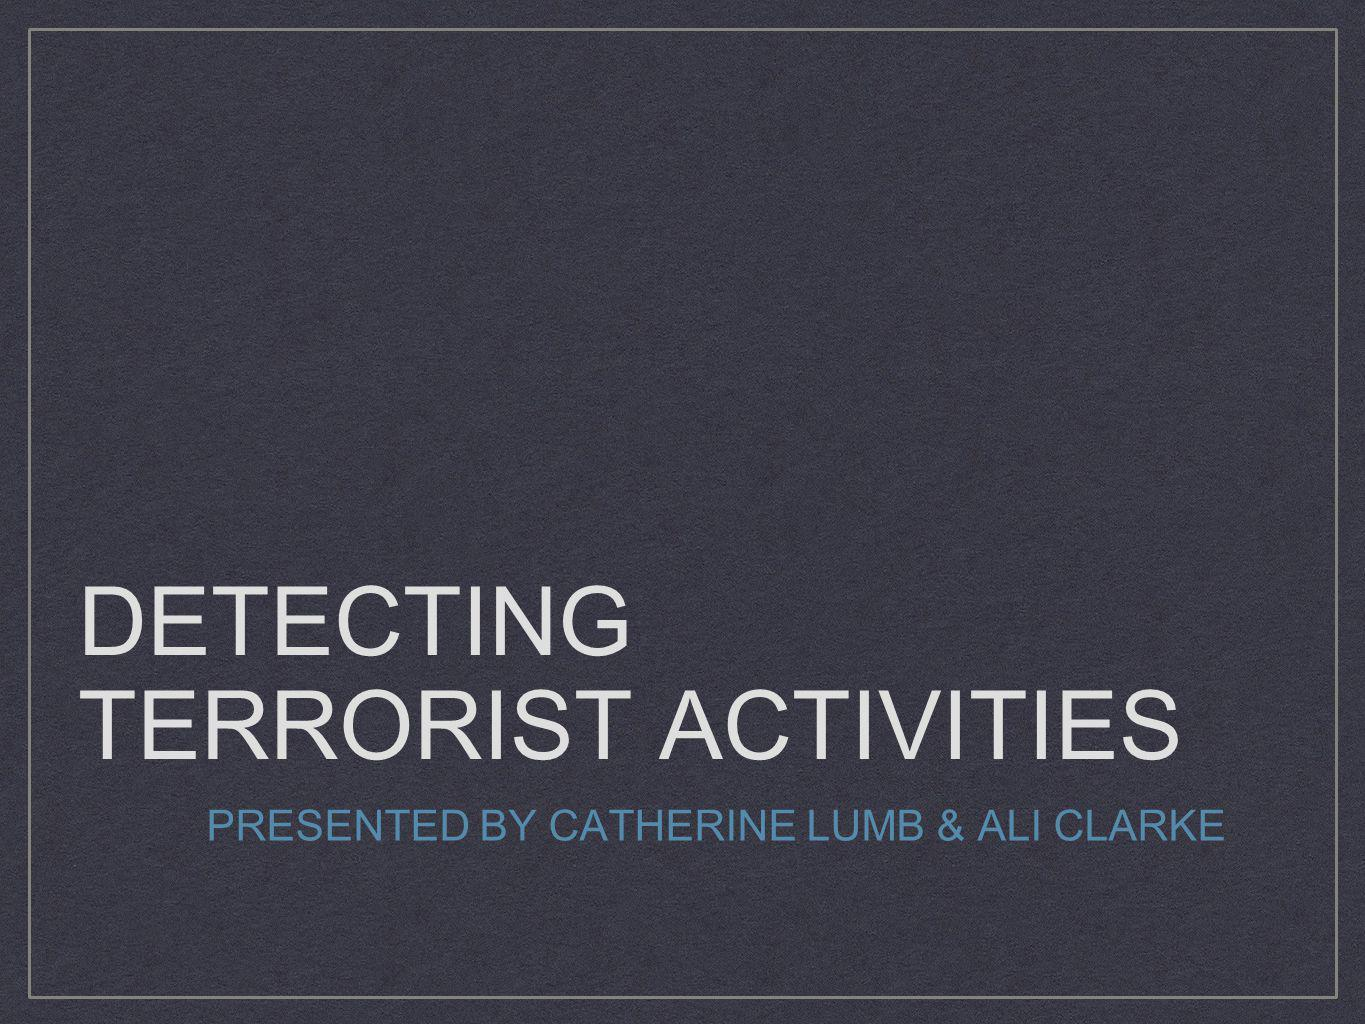 DETECTING TERRORIST ACTIVITIES PRESENTED BY CATHERINE LUMB & ALI CLARKE